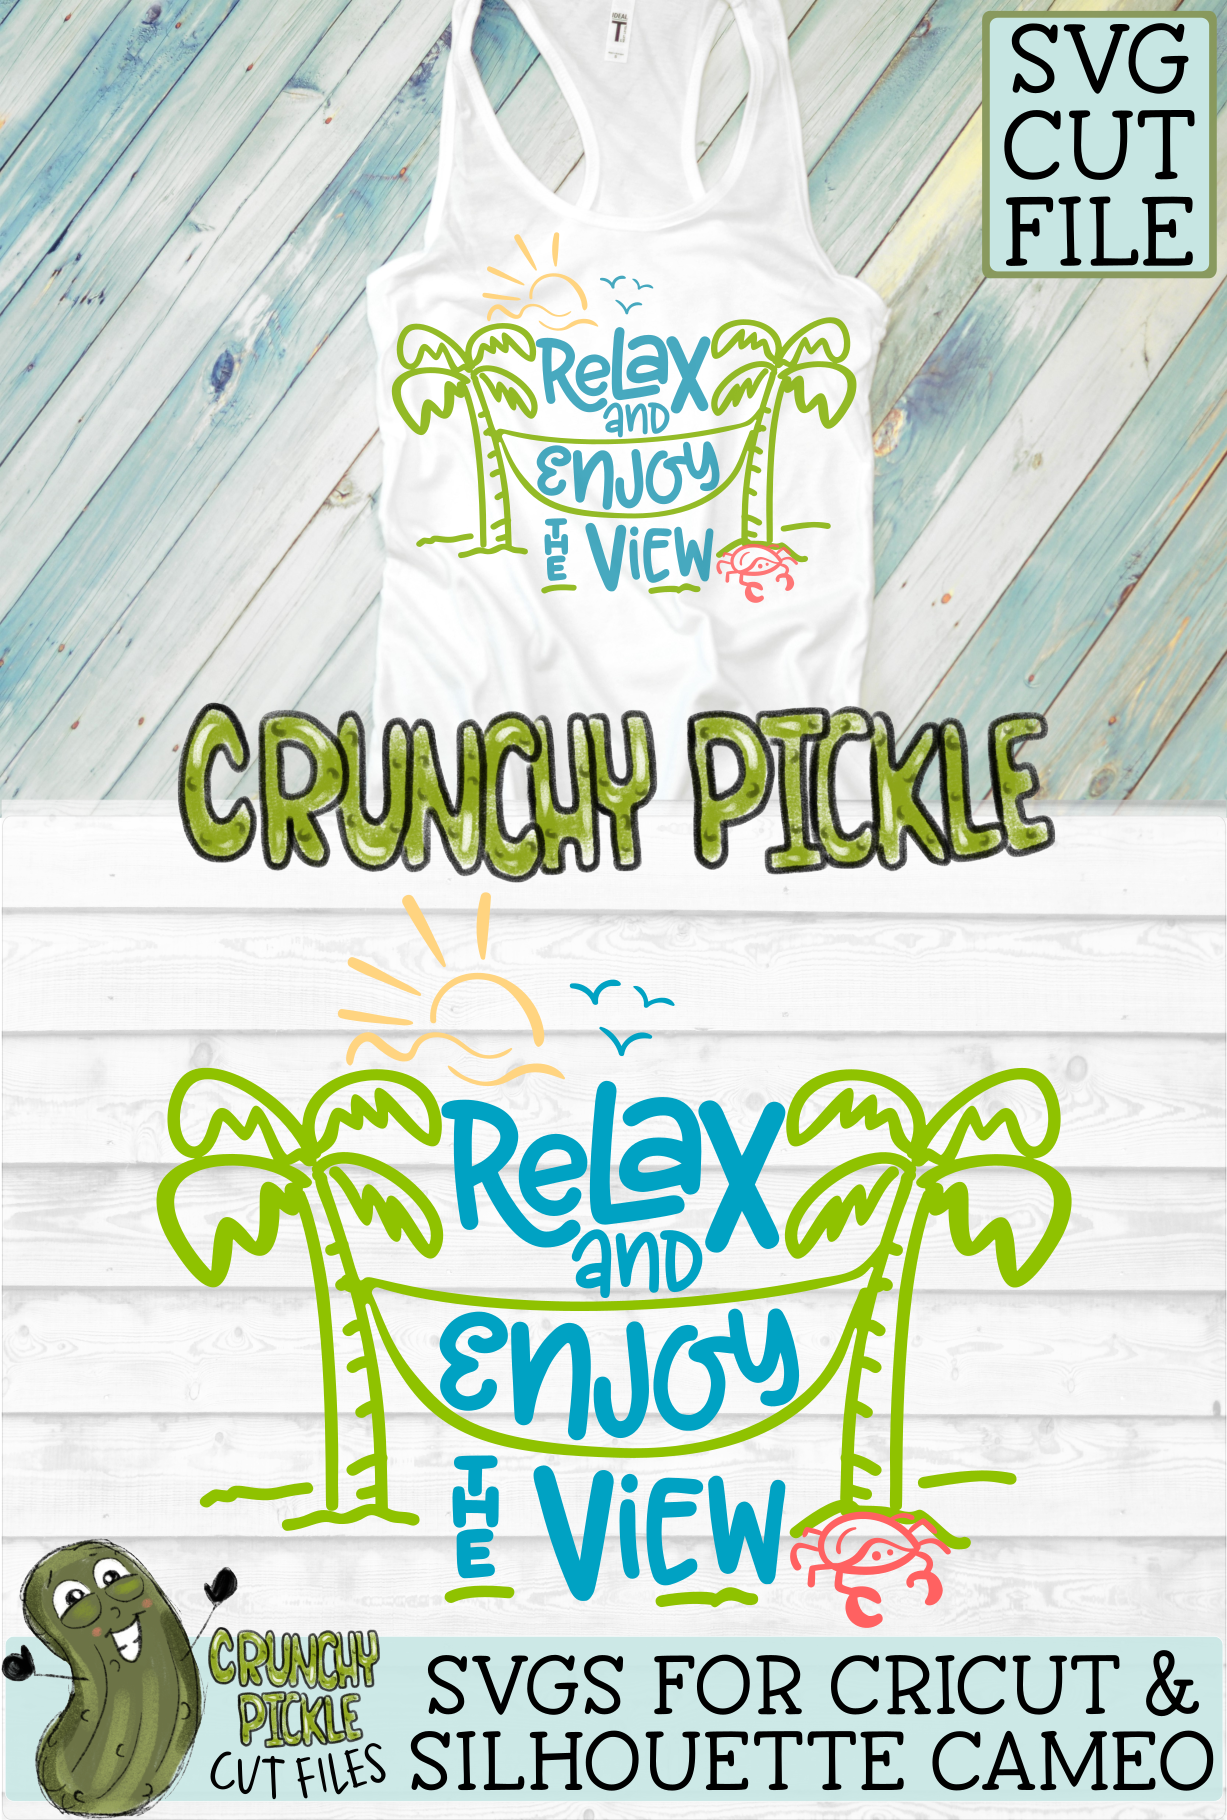 Relax and Enjoy the View Beach Hammock SVG Cut File example image 4